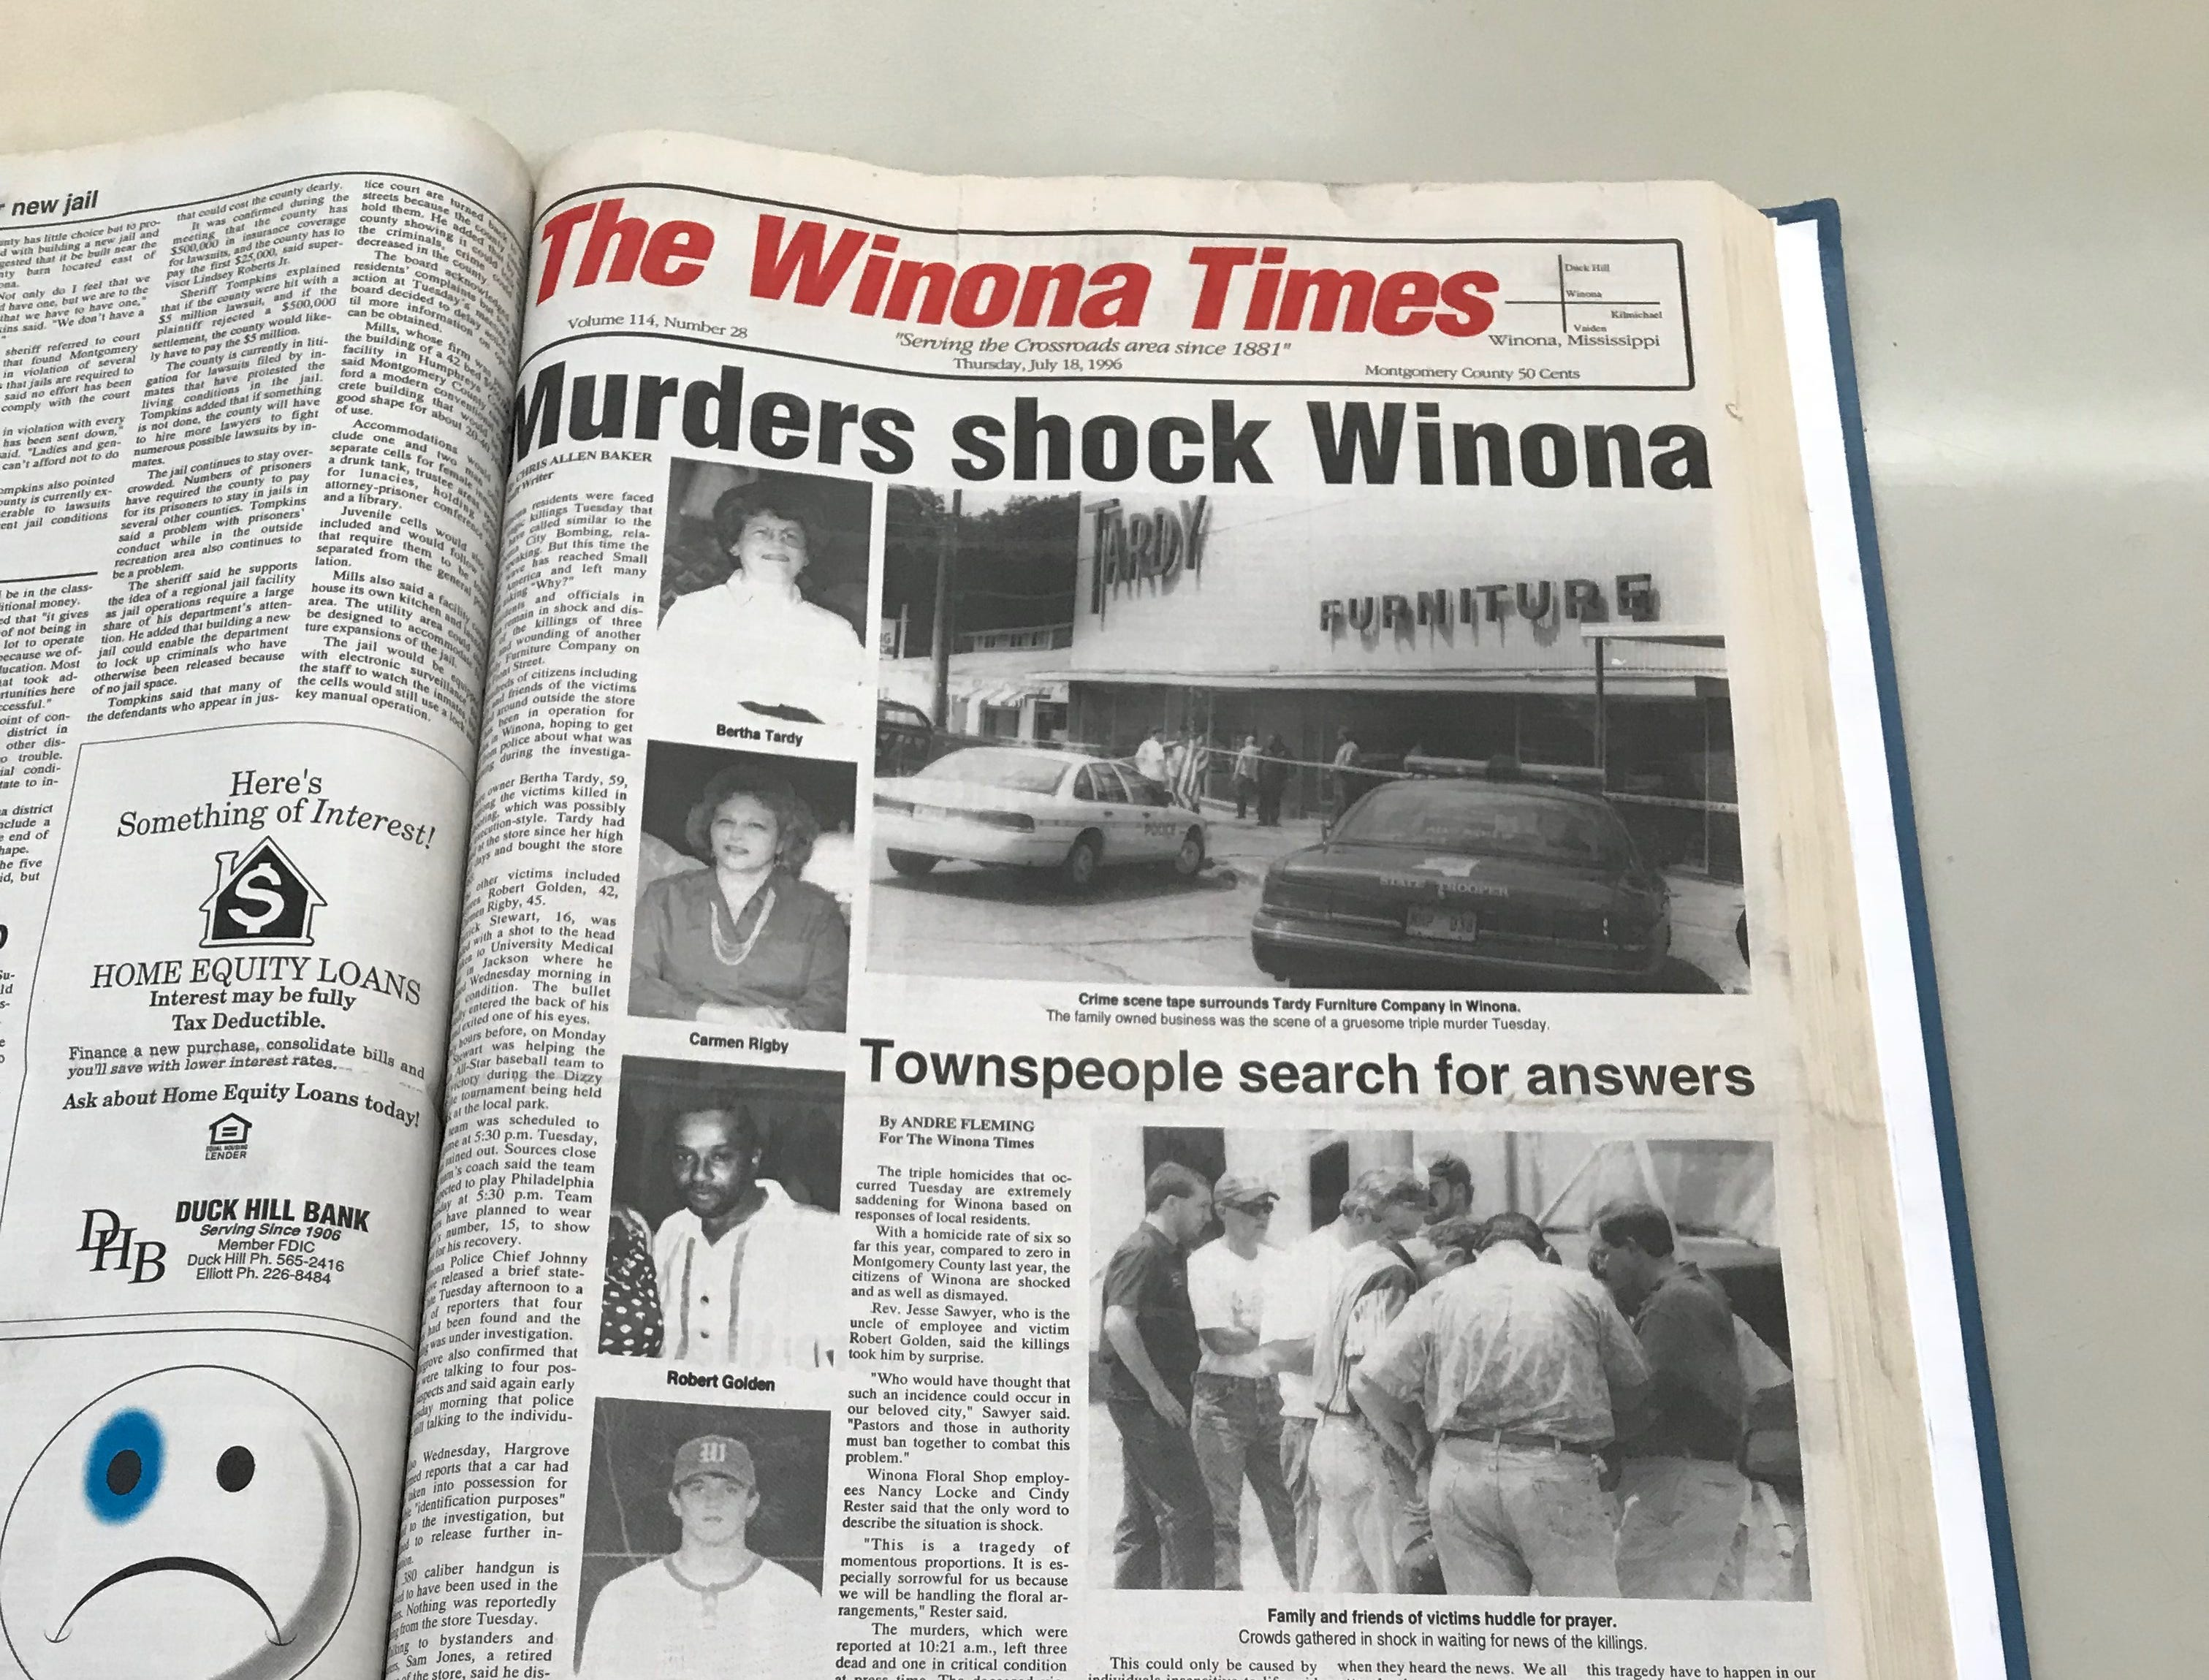 "The Montgomery County chancery clerk's office holds records of local periodical The Winona Times. The town of Winona was shaken by the 1996 quadruple execution style murders at Tardy Furniture in July 1996, as seen in this page from the newspaper photograph on July 19, 2018. Winona local Curtis Flowers was tried six times for the deaths of Robert Golden, Carmen Rigby,  Bertha Tardy and Derrick ""Bobo"" Stewart."